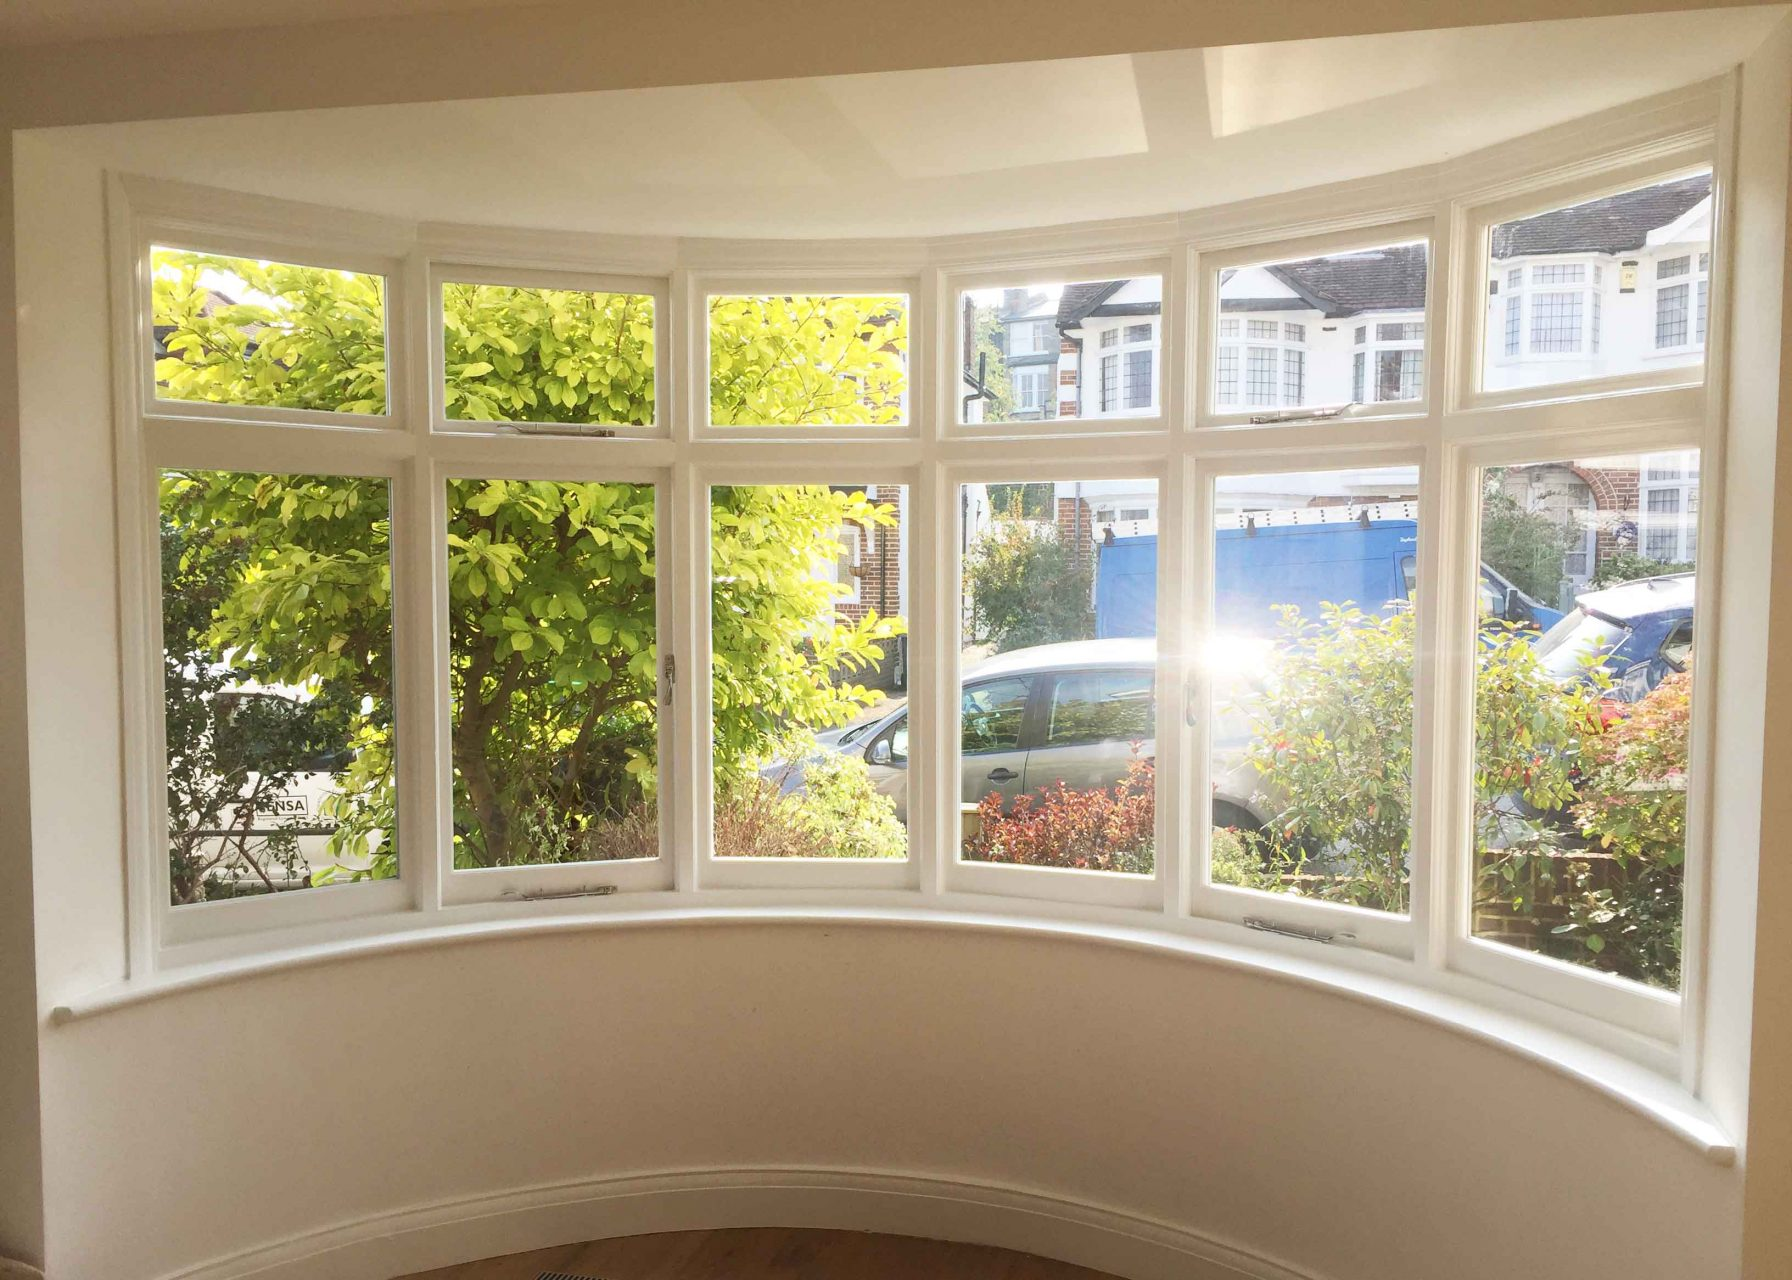 Gallery Image: Internal view of rounded casement bay installed in Muswell Hill house